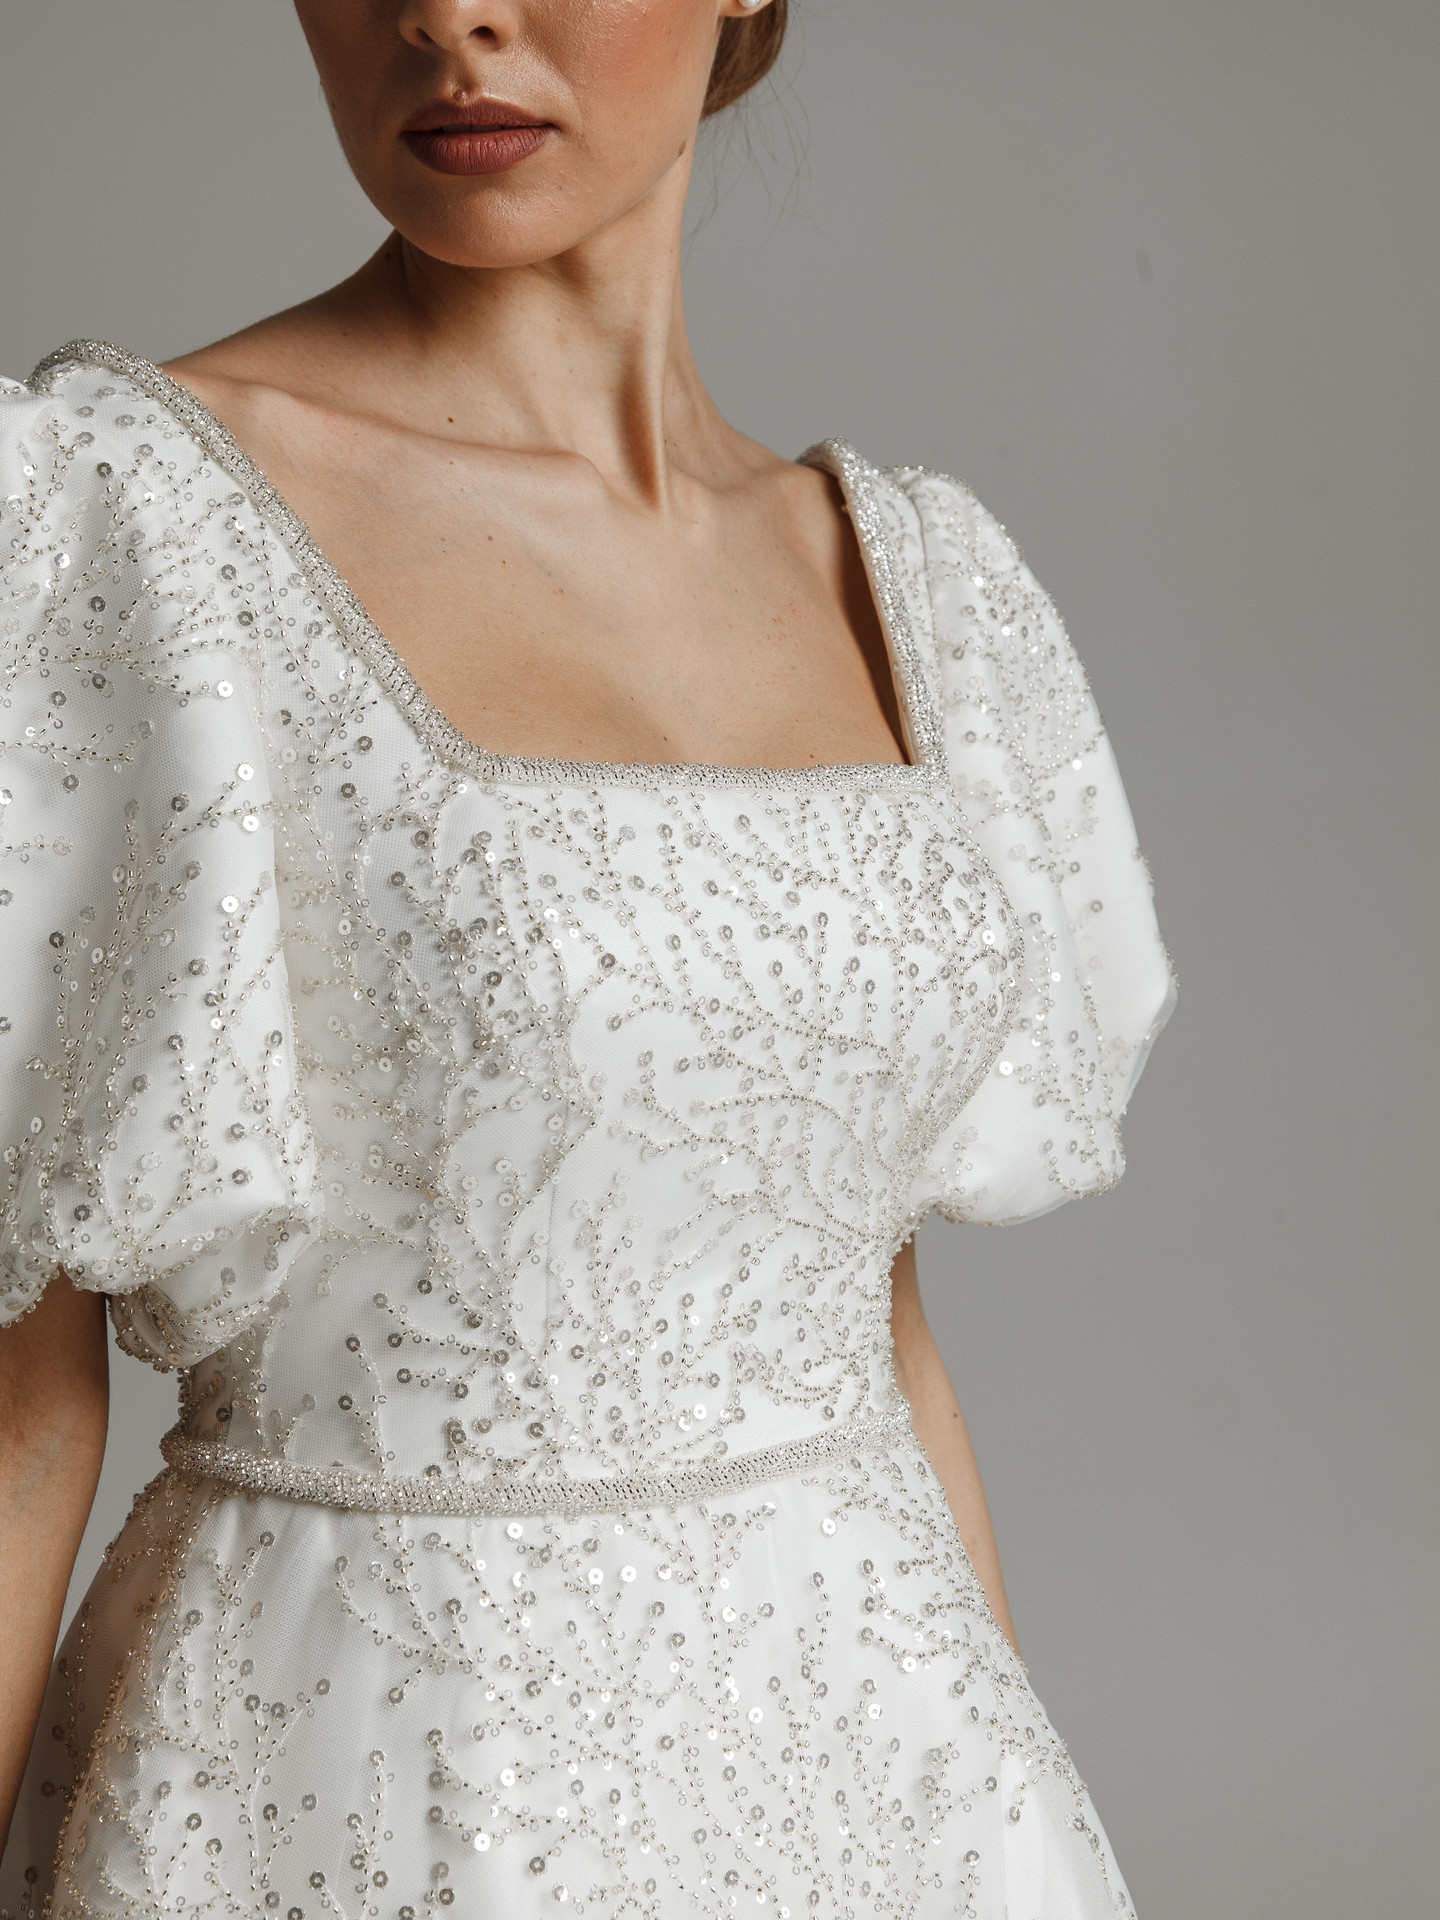 Martha gown, 2021, couture, gown, dress, bridal, off-white, lace, A-line, train, sleeves